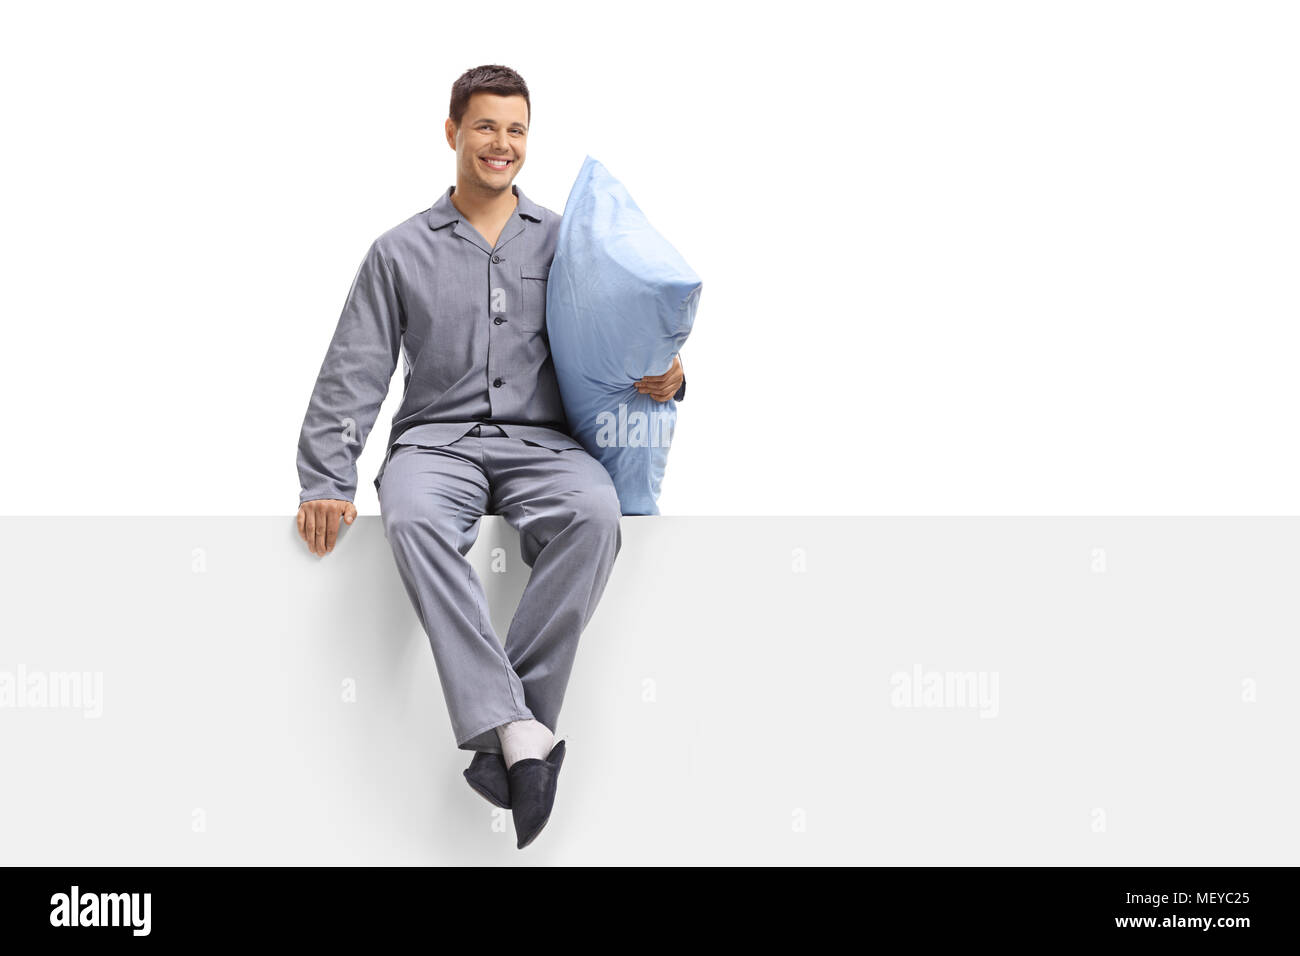 Young man in pajamas holding a pillow and sitting on a panel isolated on white background - Stock Image